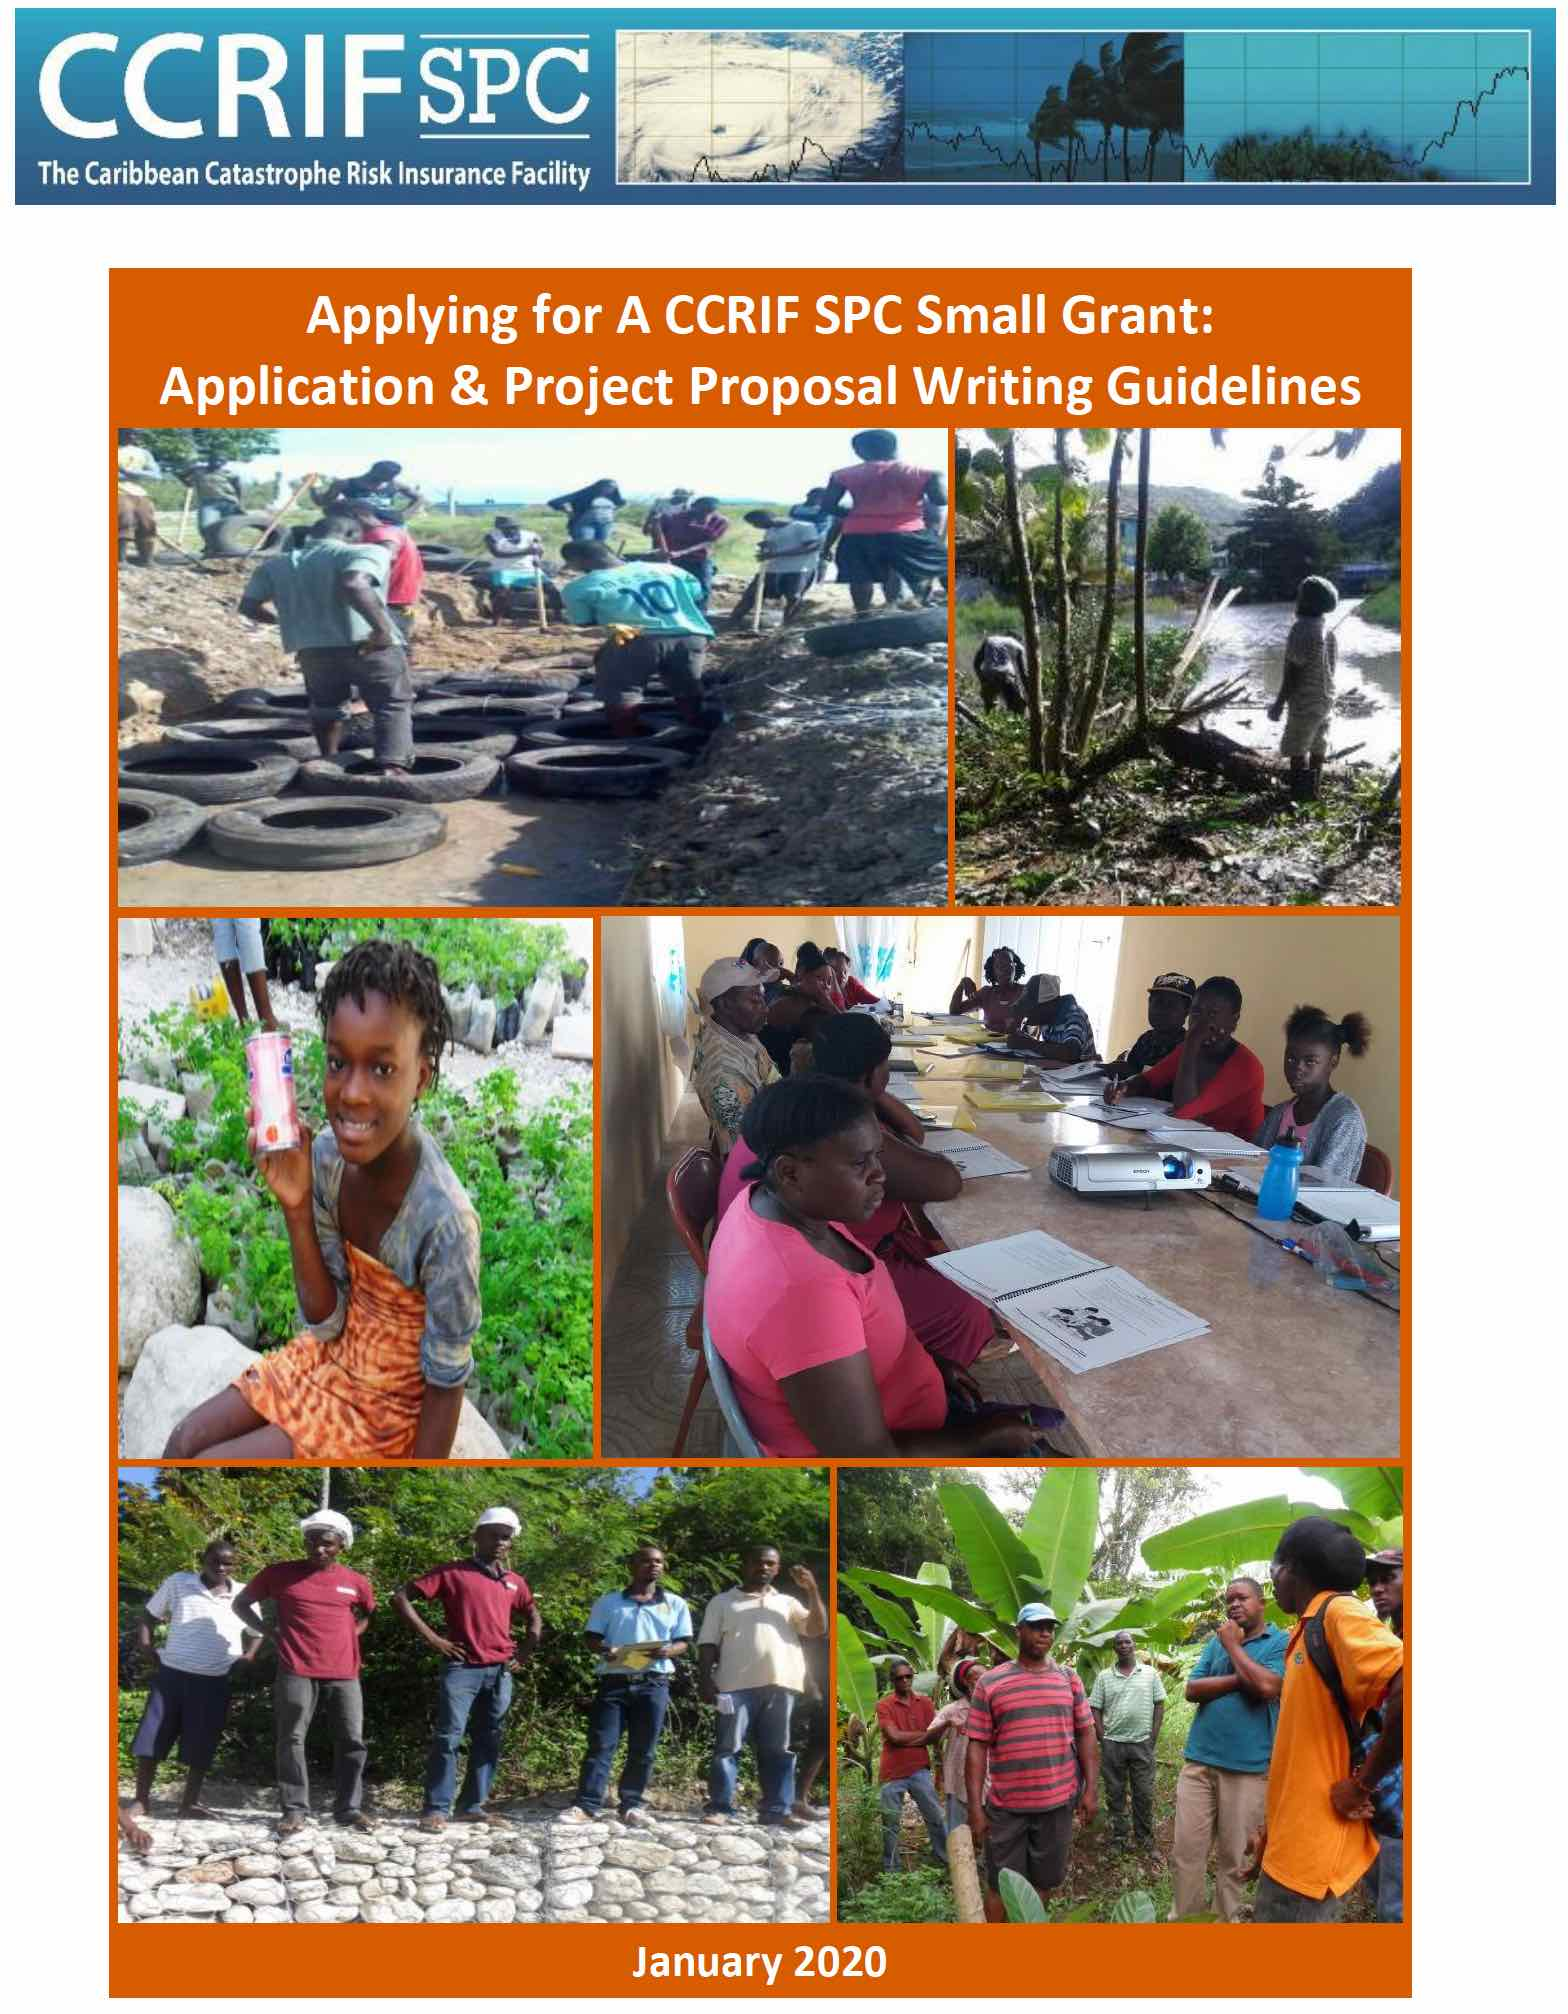 Applying for A CCRIF SPC Small Grant: Application & Project Proposal Writing Guidelines